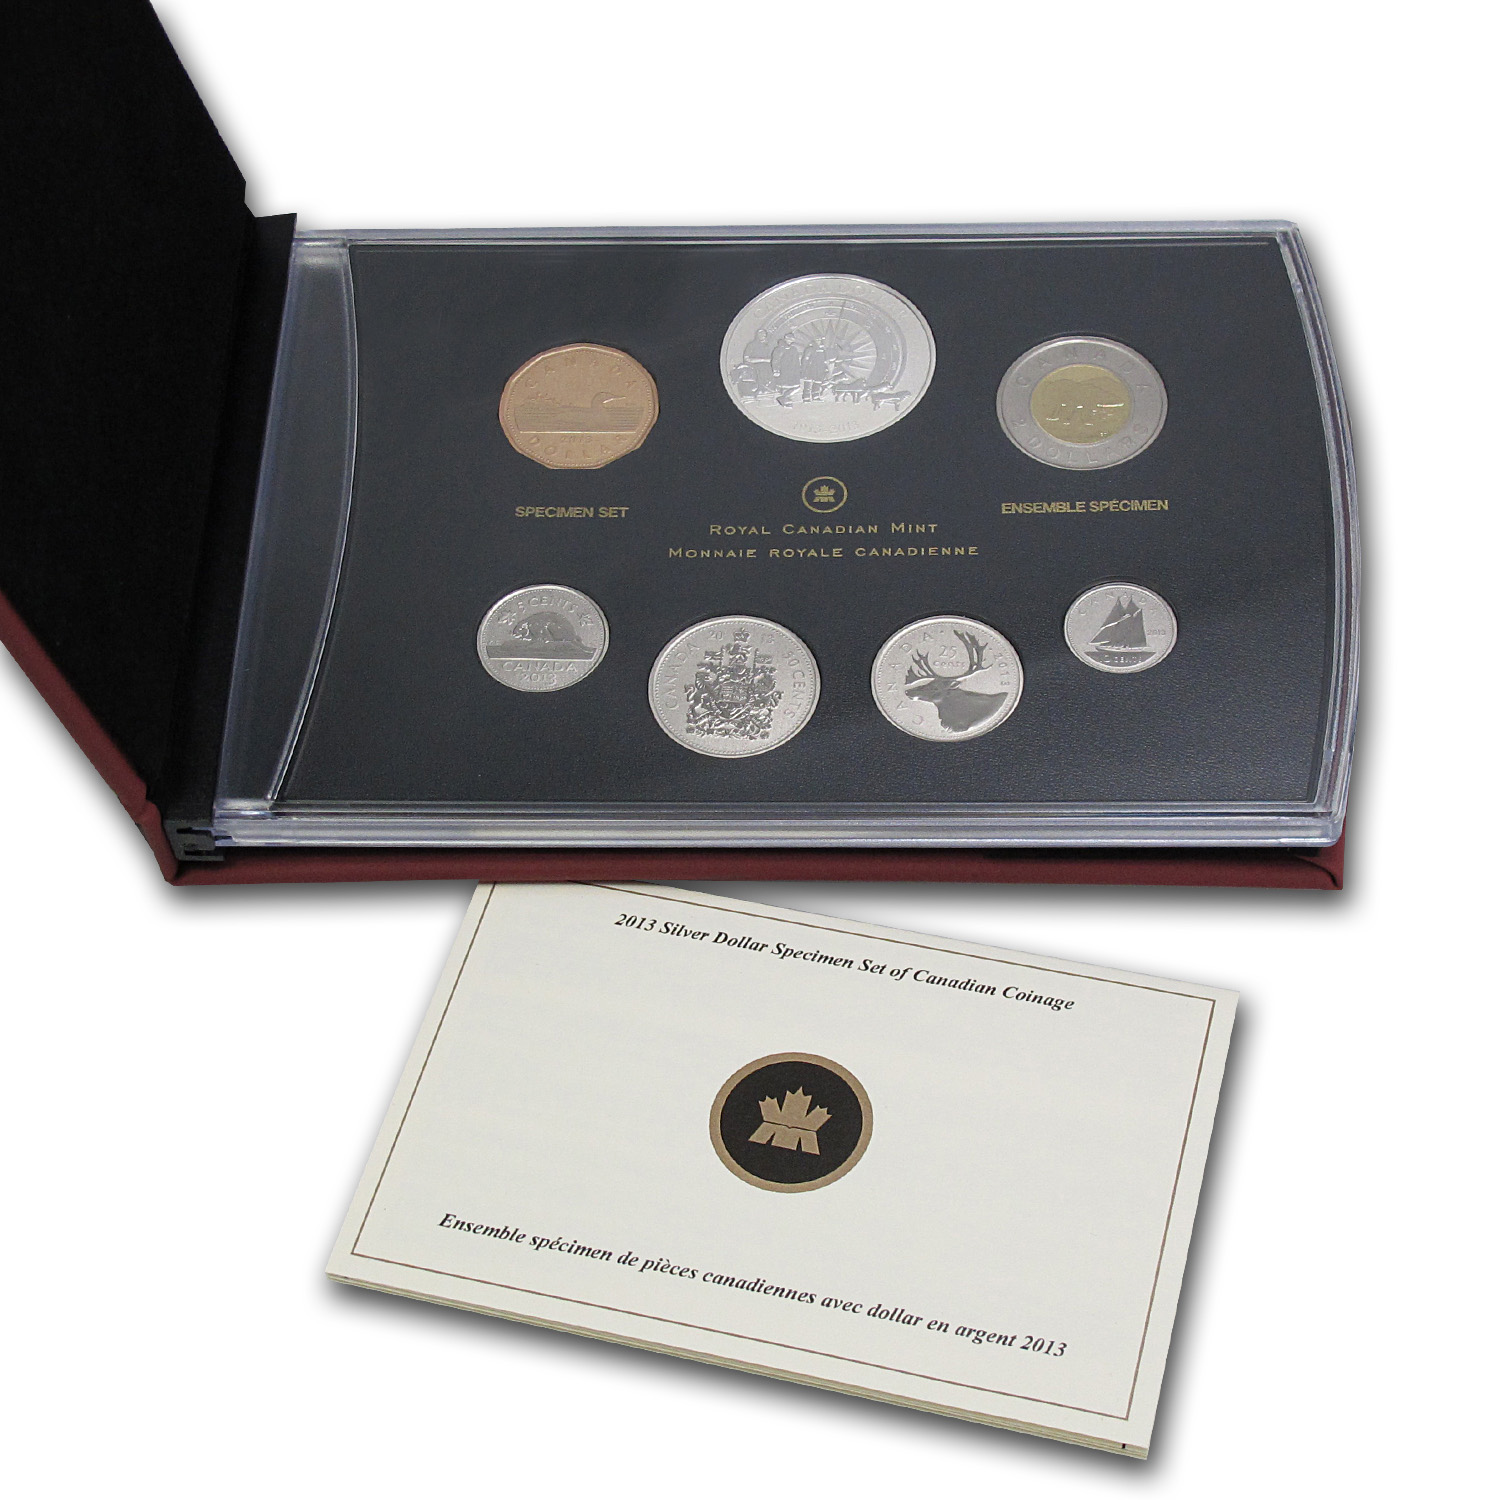 2013 Silver Dollar Specimen Set-100th Anniv. of Arctic Expedition